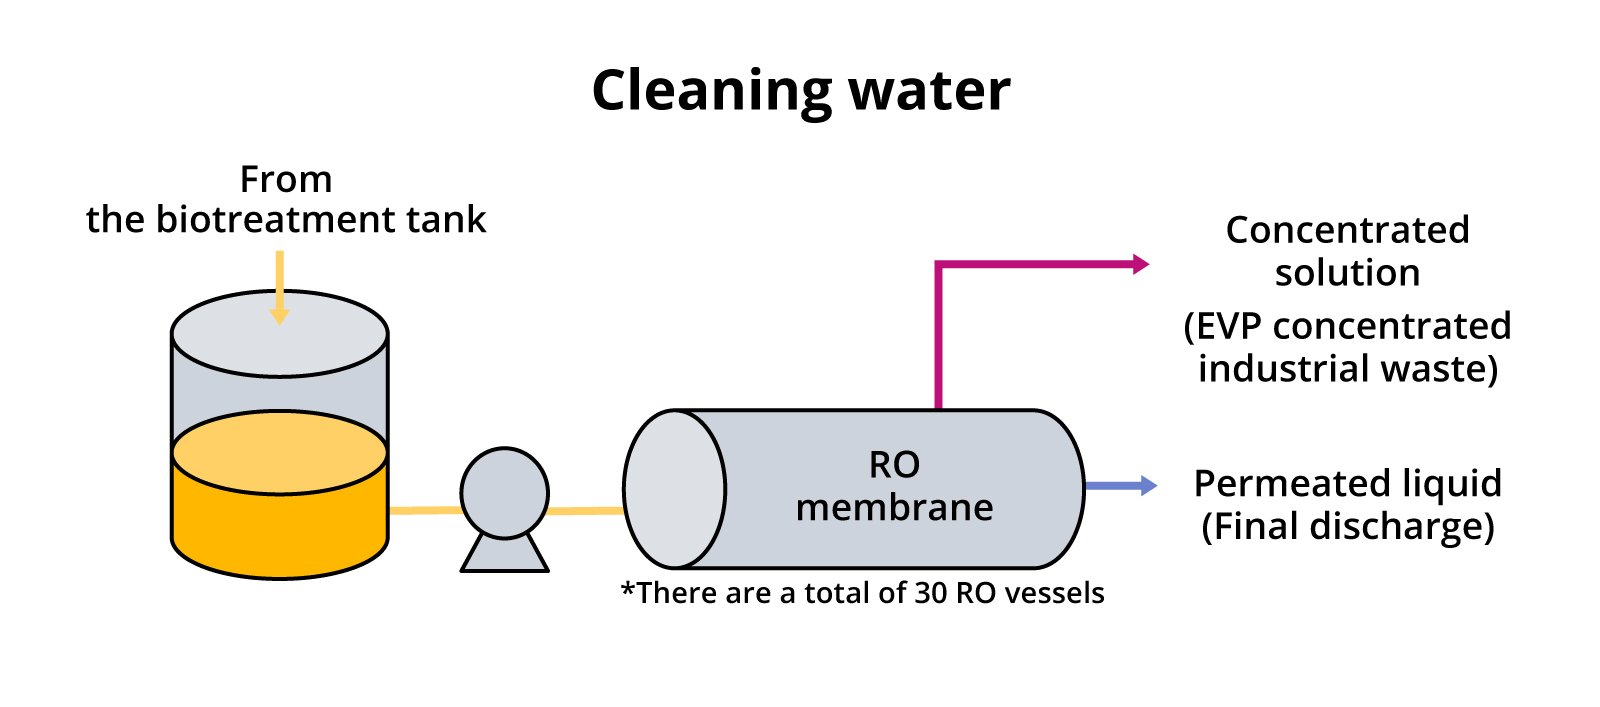 Illustration: Cleaning water